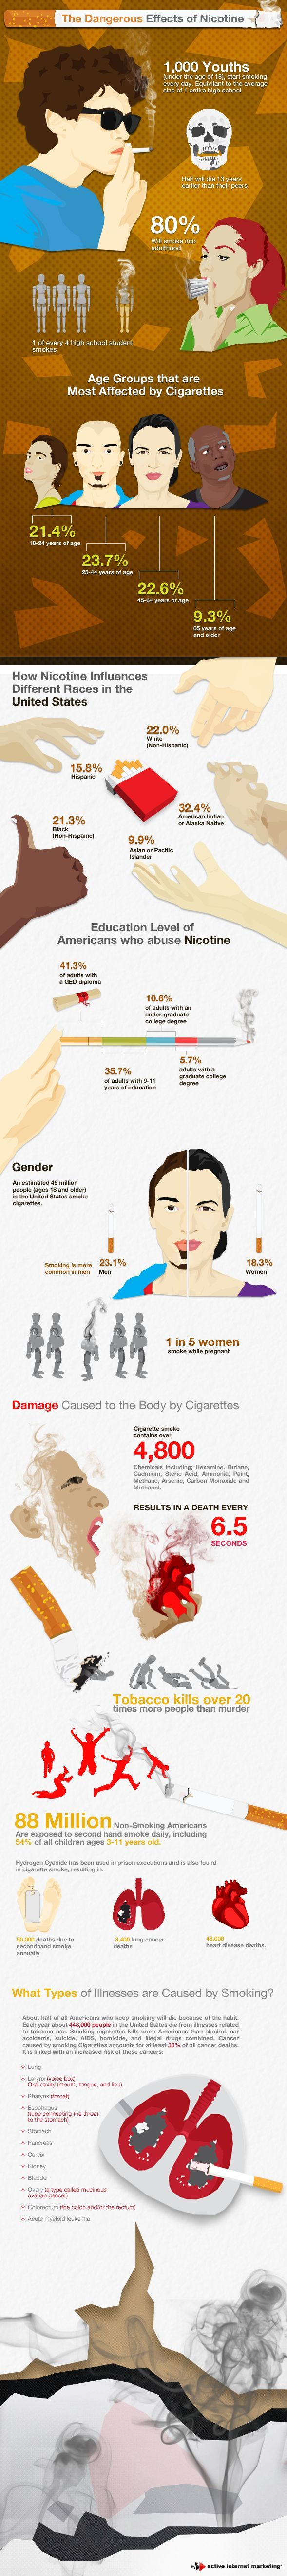 Nicotine is the addictive element contained in cigarettes, and the reason why quitting smoking is often very difficult. Of those who begin smoking as